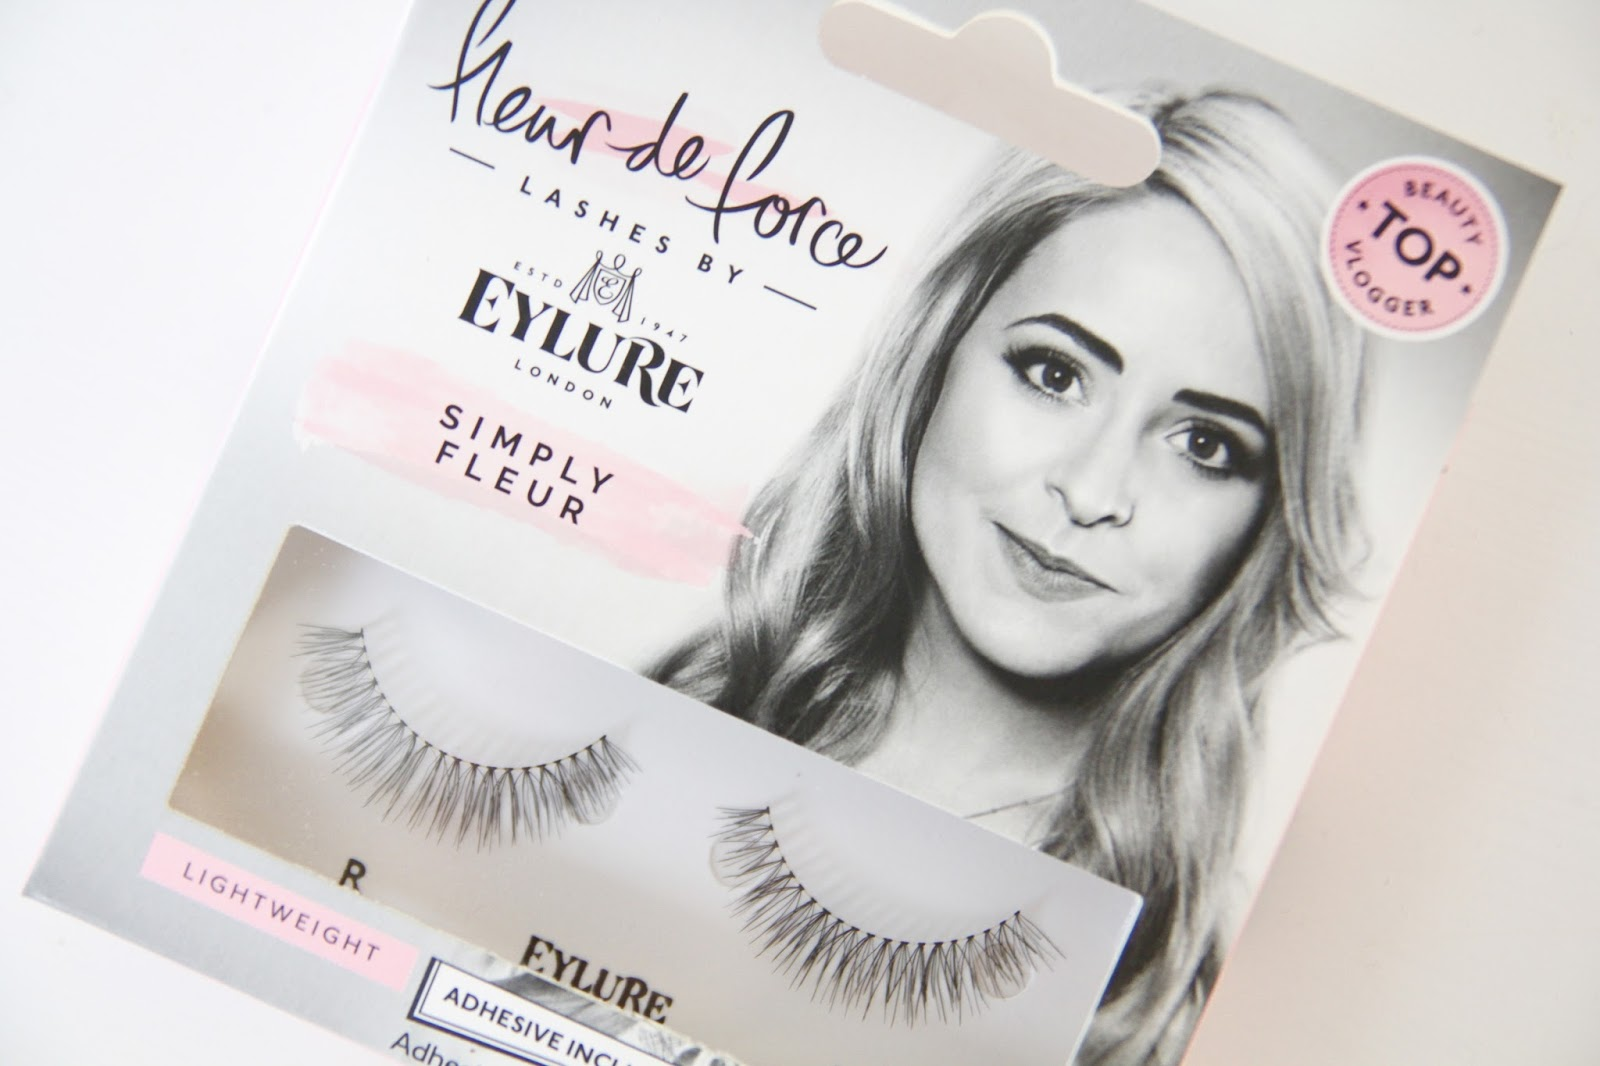 b2b2471bab2 'Couture Fleur' – Next up for the individuals. I've been obsessed with  Eylure's indiviual cluster lashes for quite some time now, but I always end  up using ...